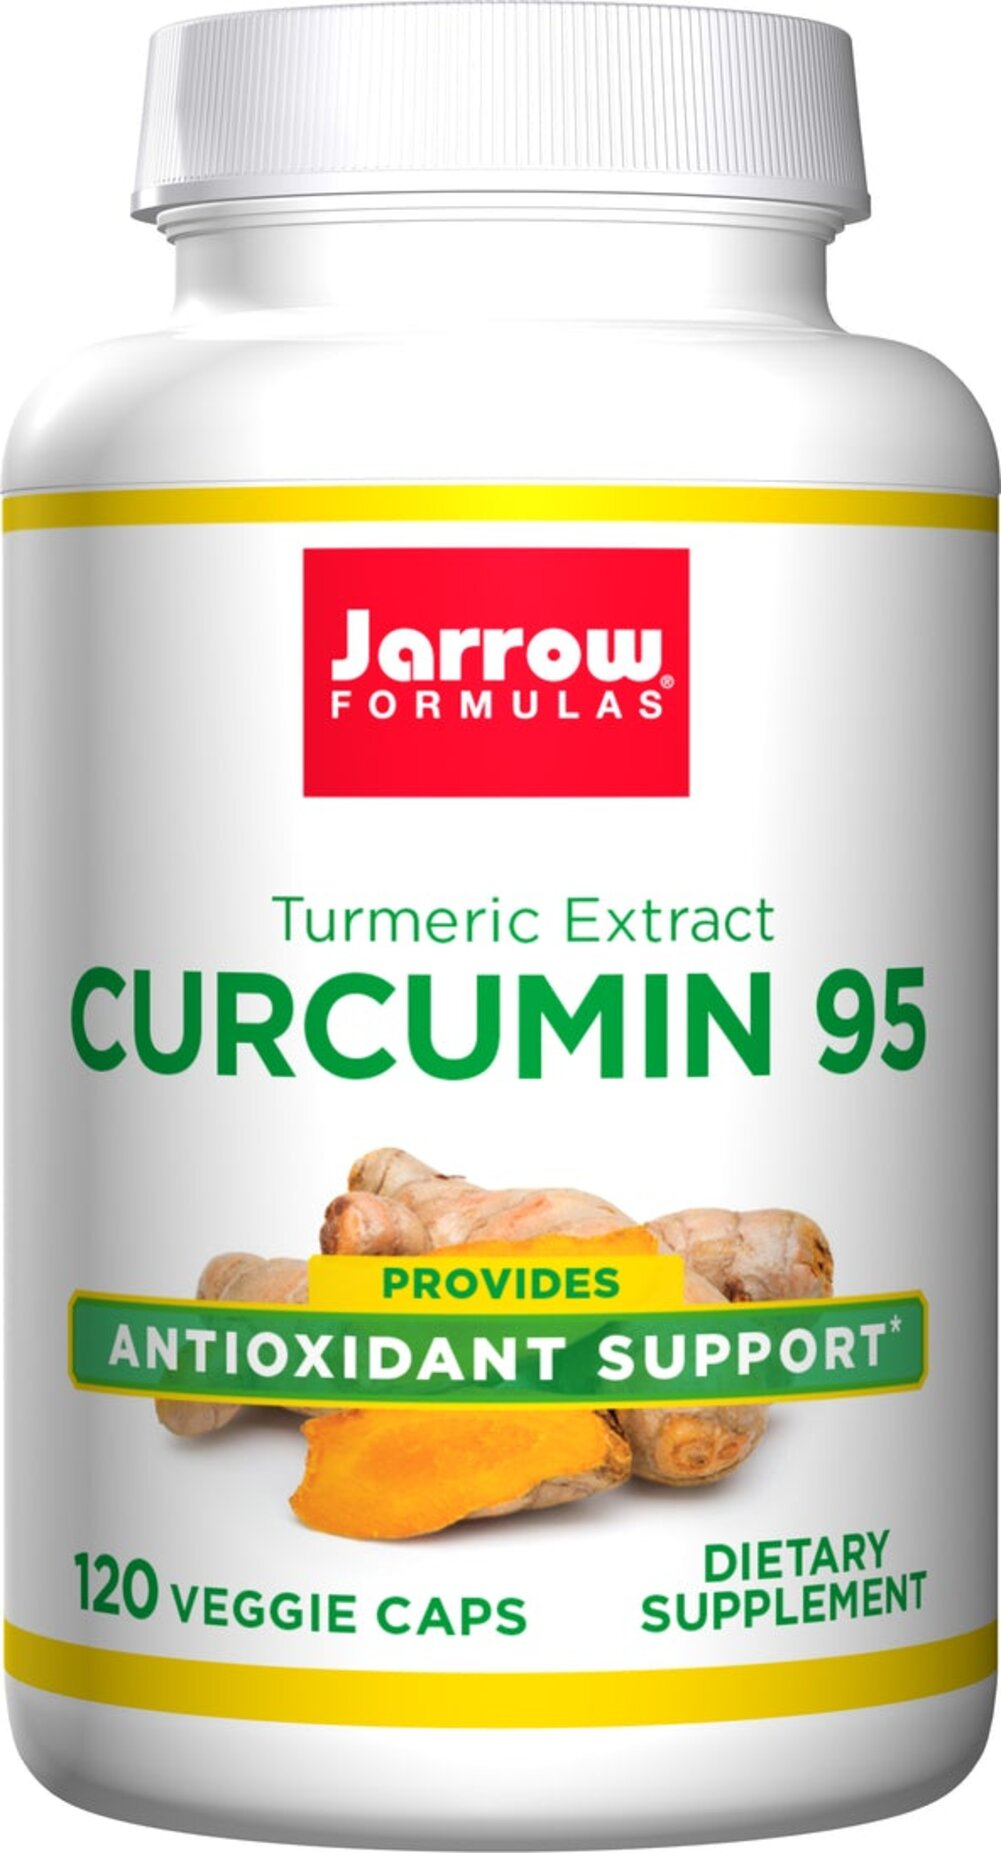 Curcumin 95™ 500 mg <p><strong>From the Manufacturer's Label:</strong></p><p>Curcumin 95™ is a concentrate of 95% curcuminoids, which are powerful antioxidants found in the spice turmeric root. </p><p>Manufactured by Jarrow Formulas</p><p></p> 120 Capsules 500 mg $29.99